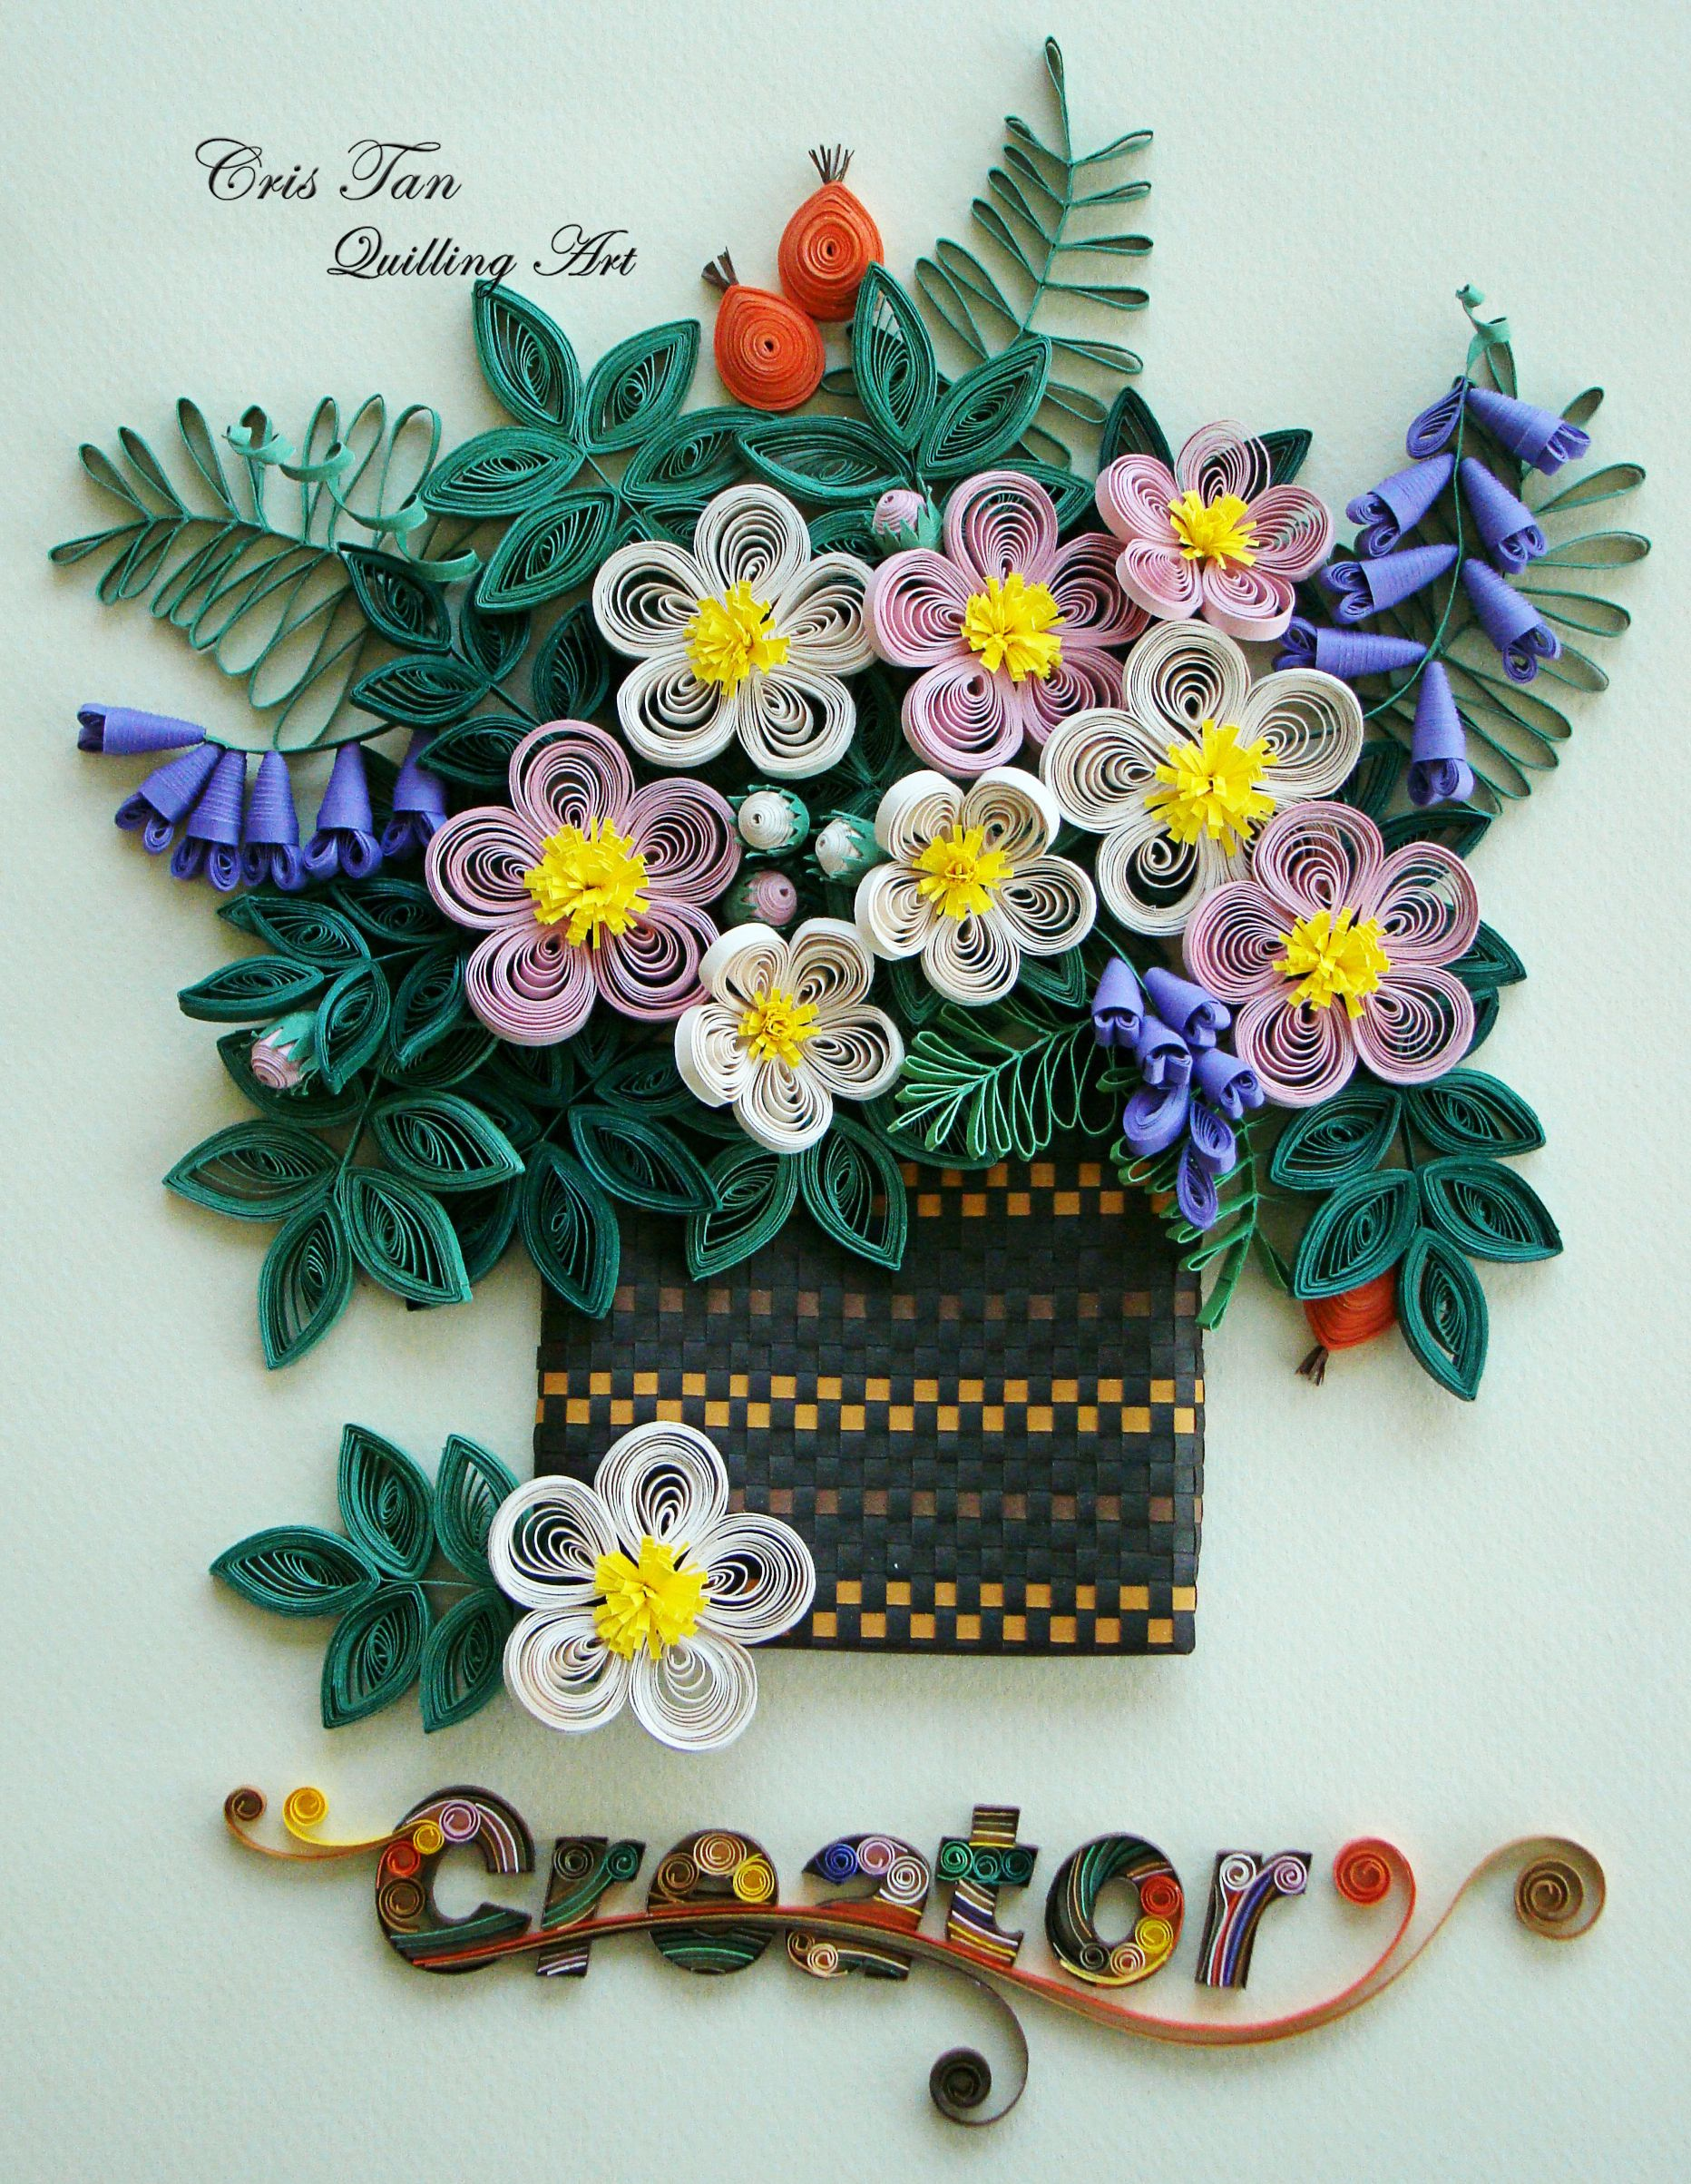 Quilling beauty flowers cris tan quilling art for Paper quilling work